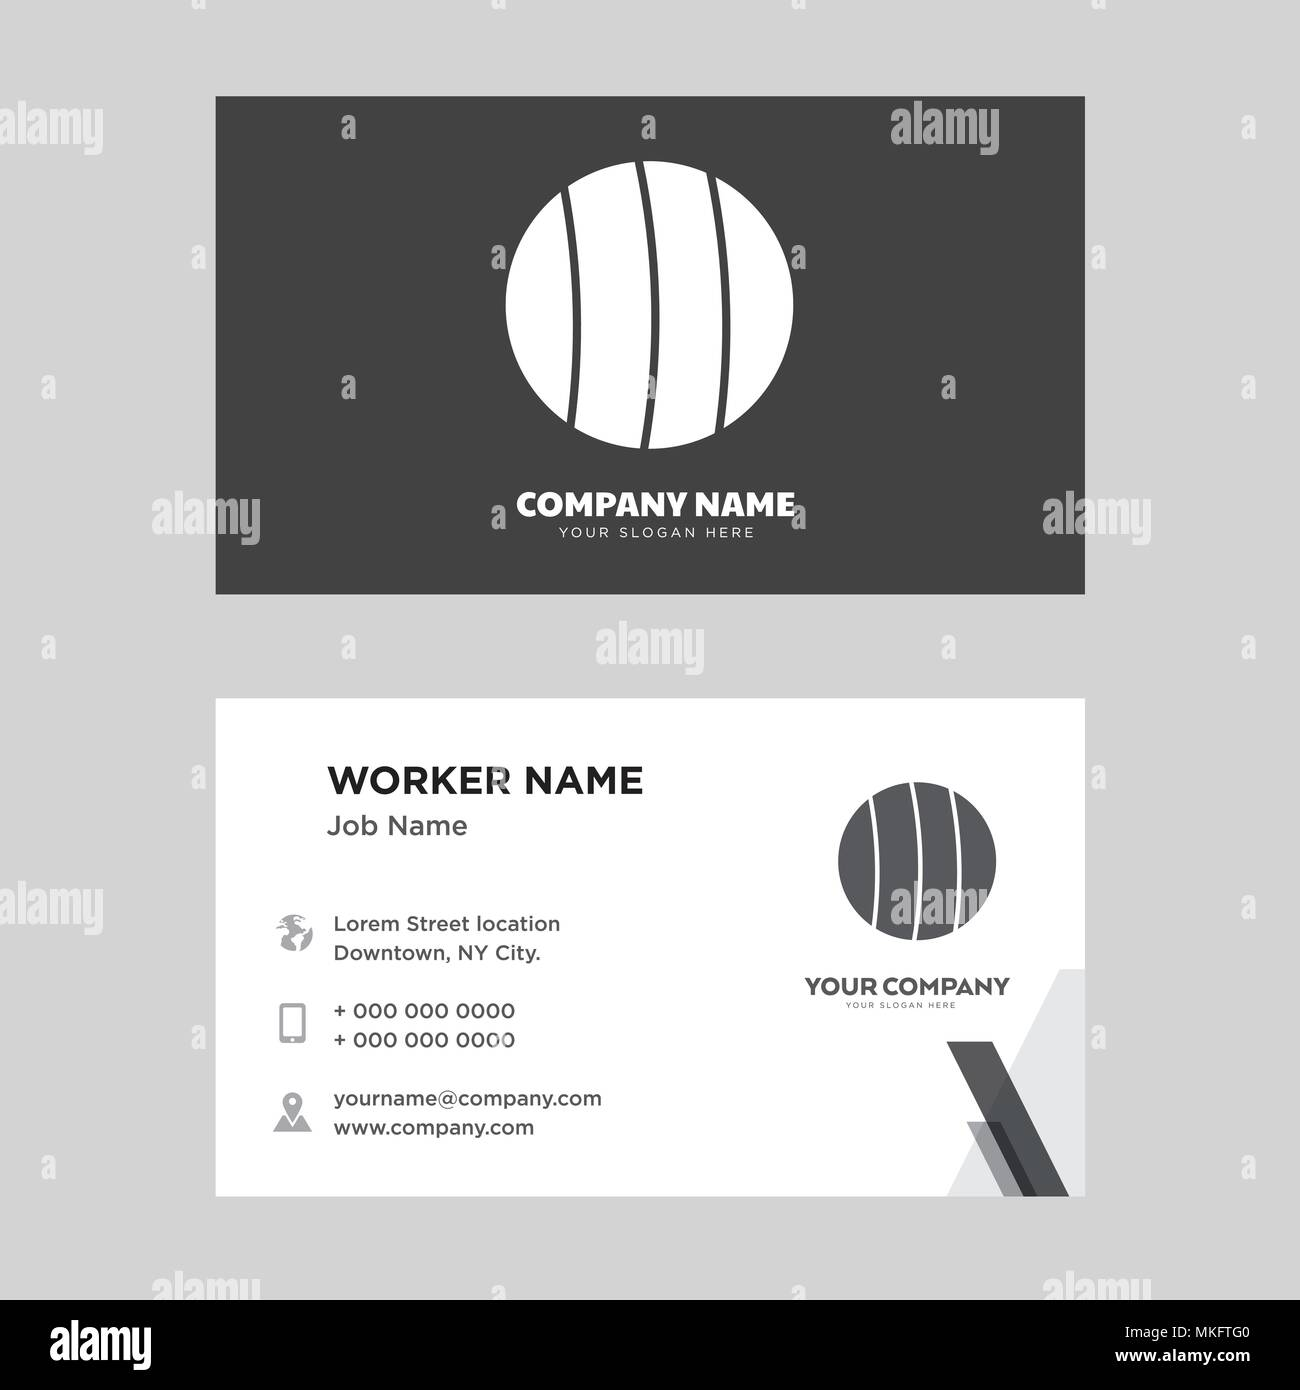 Soccer business card design template, Visiting for your company ...